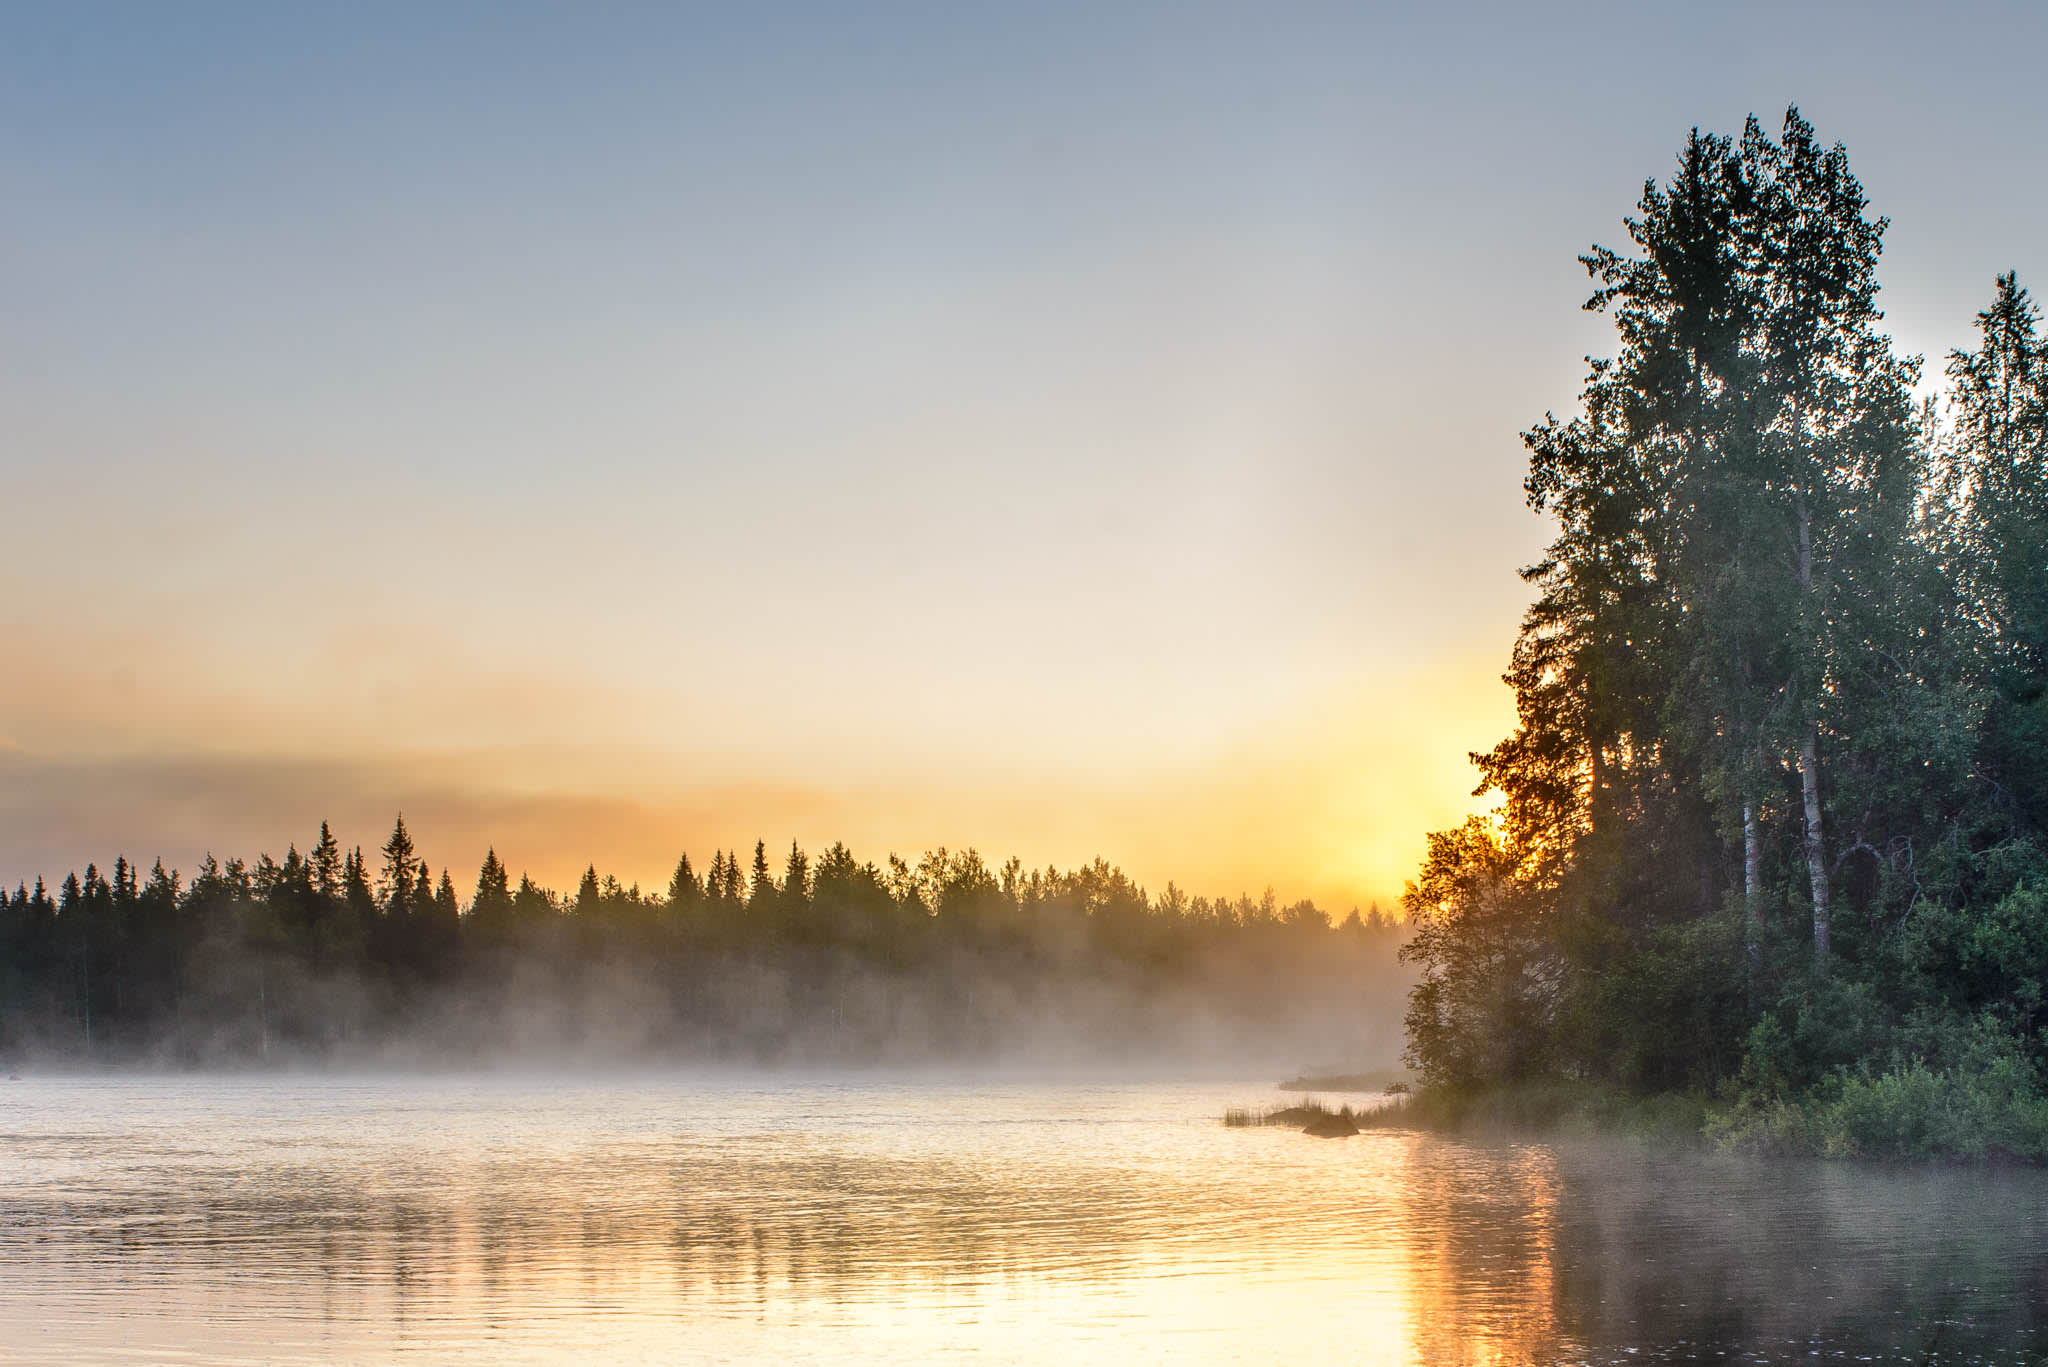 Nordic lake view with fog